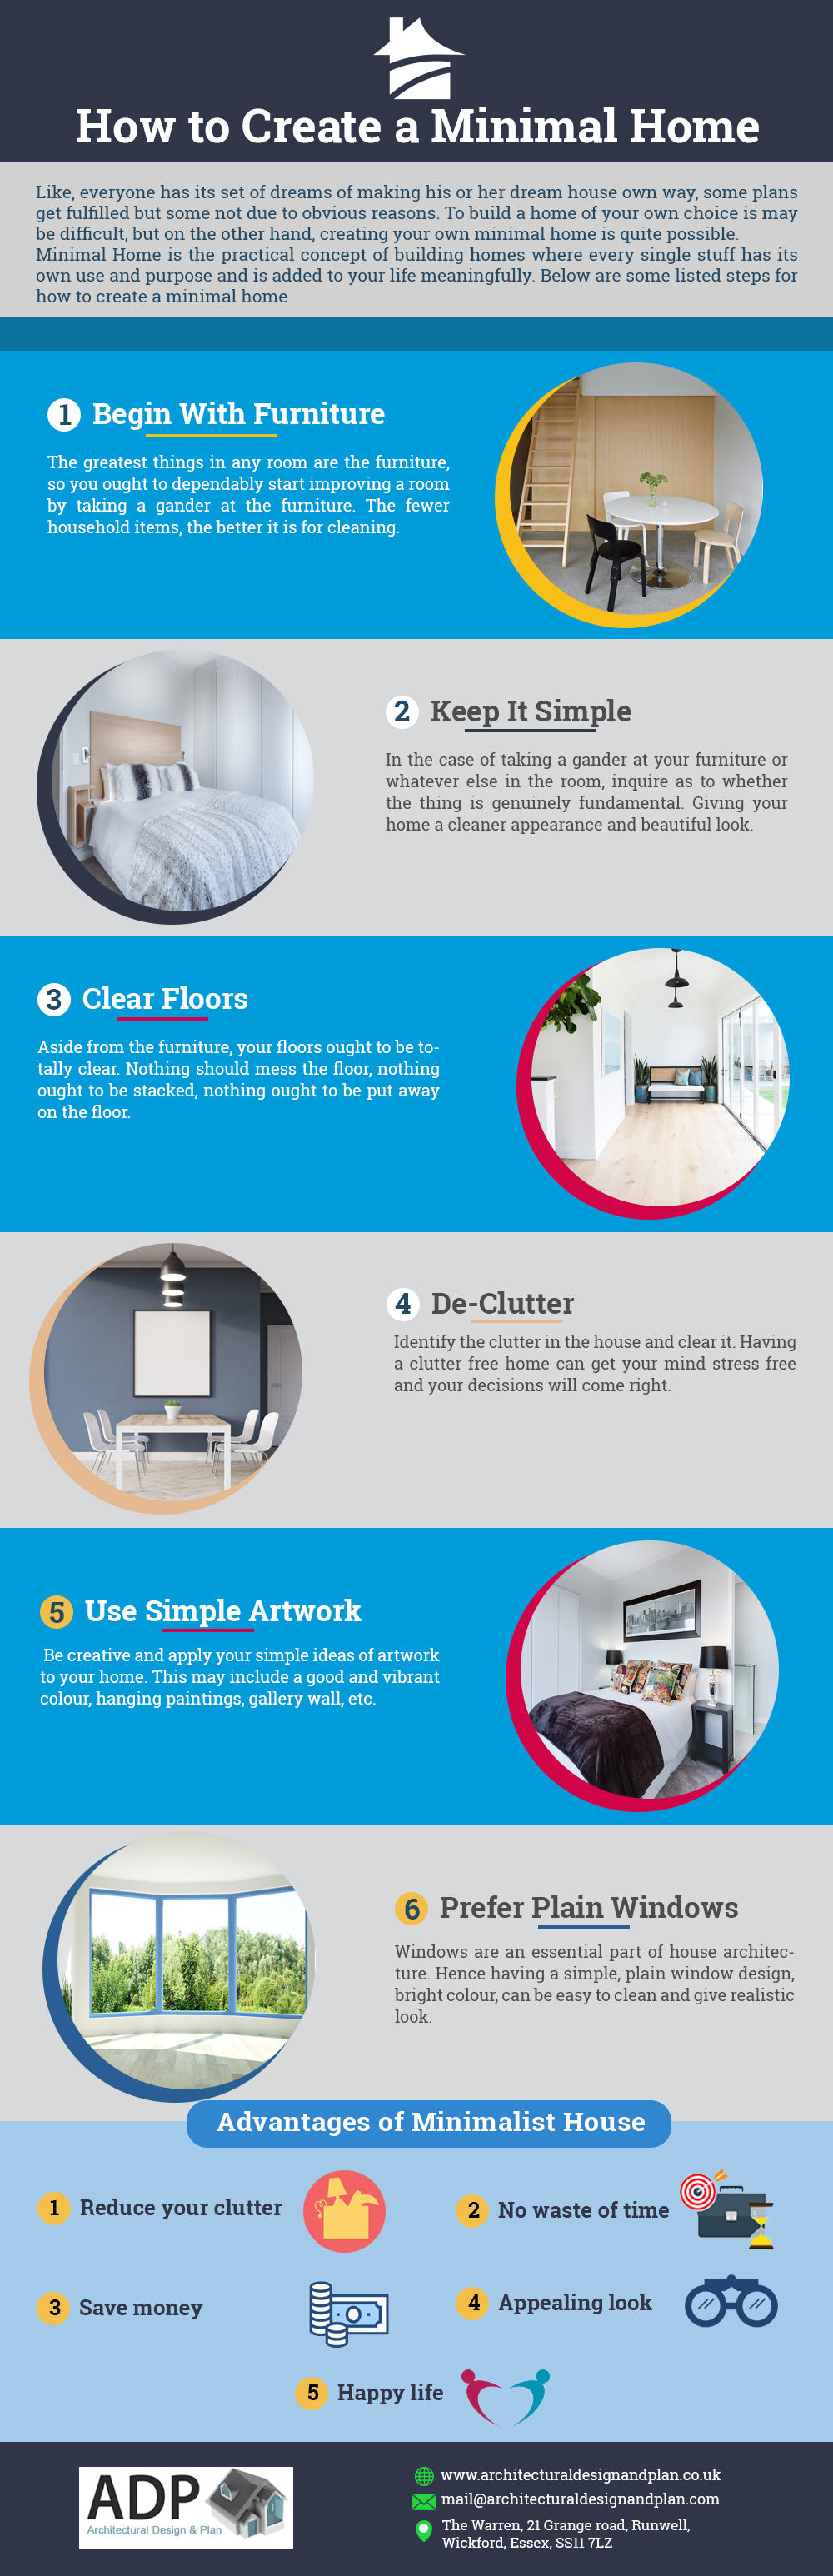 How-to-Create-a-Minimal-Home